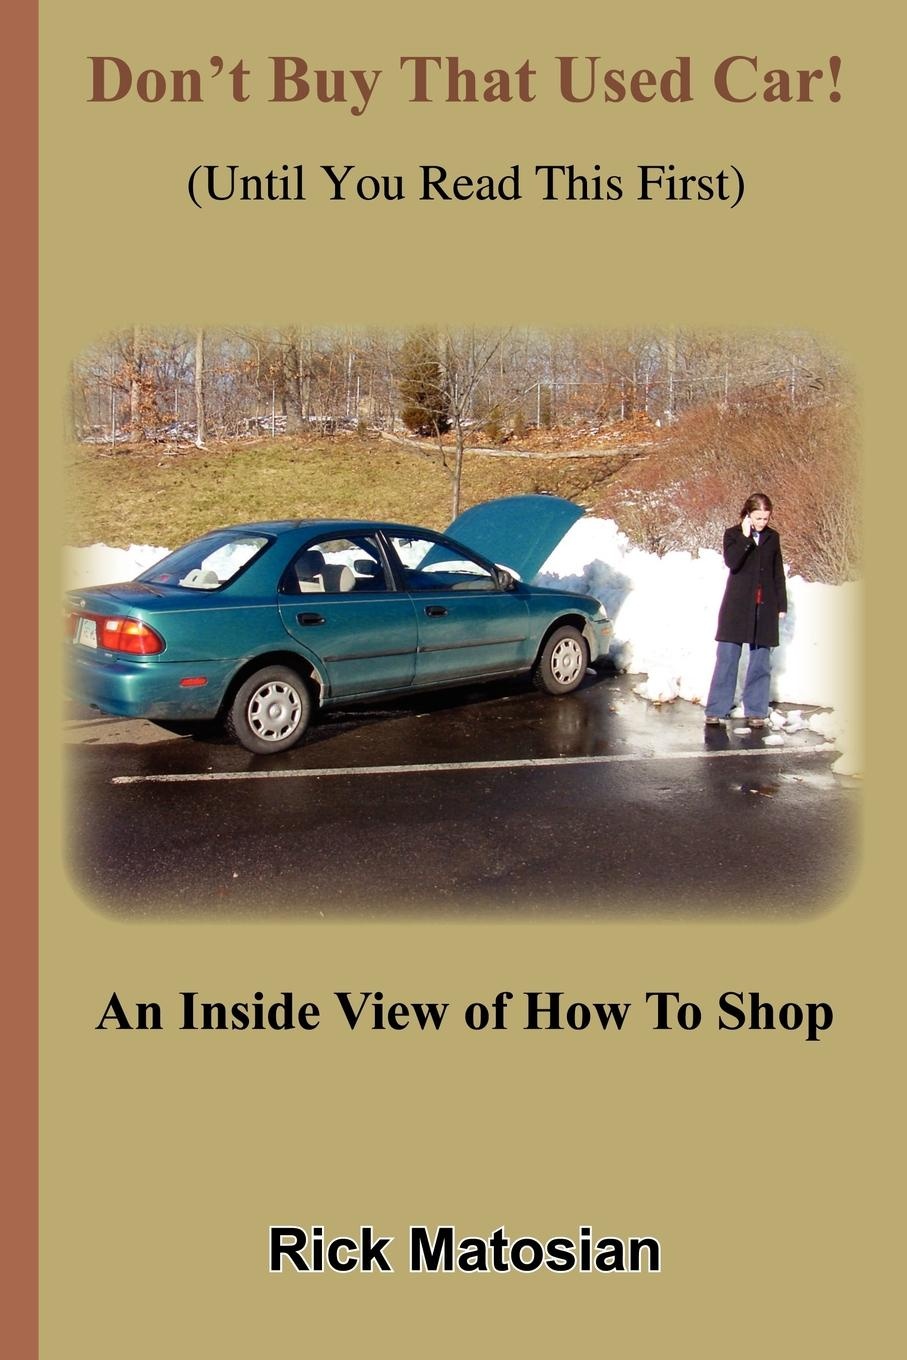 Rick Matosian Don't Buy That Used Car! (Until You Read This First). An Inside View of How To Shop